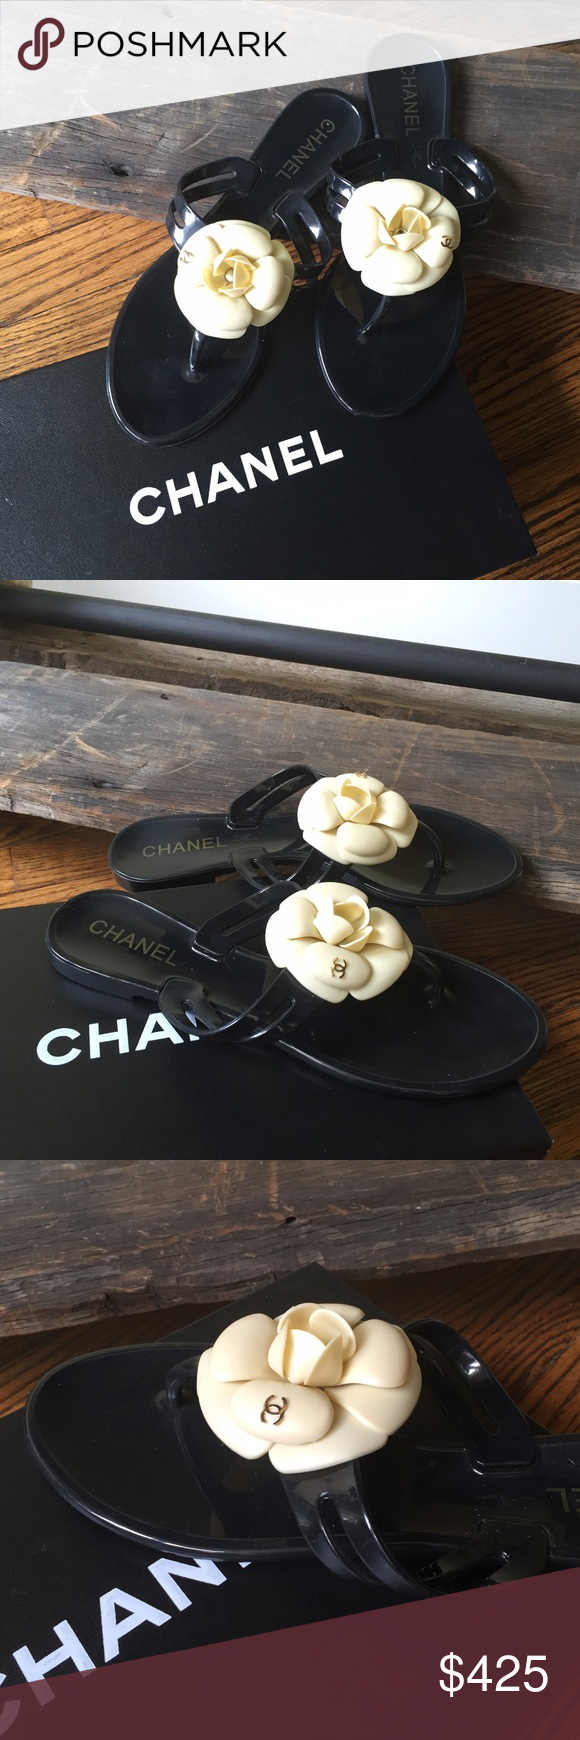 Authentic Chanel sandals Authentic Chanel camelia sandals.in black with cream camellias, tiny gold cc logo on one of the petals.  They are in great condiction, only been worn a handful of times. Very little use. Size 38. Rubber. Made in Italy. Chanel is forever.. CHANEL Shoes